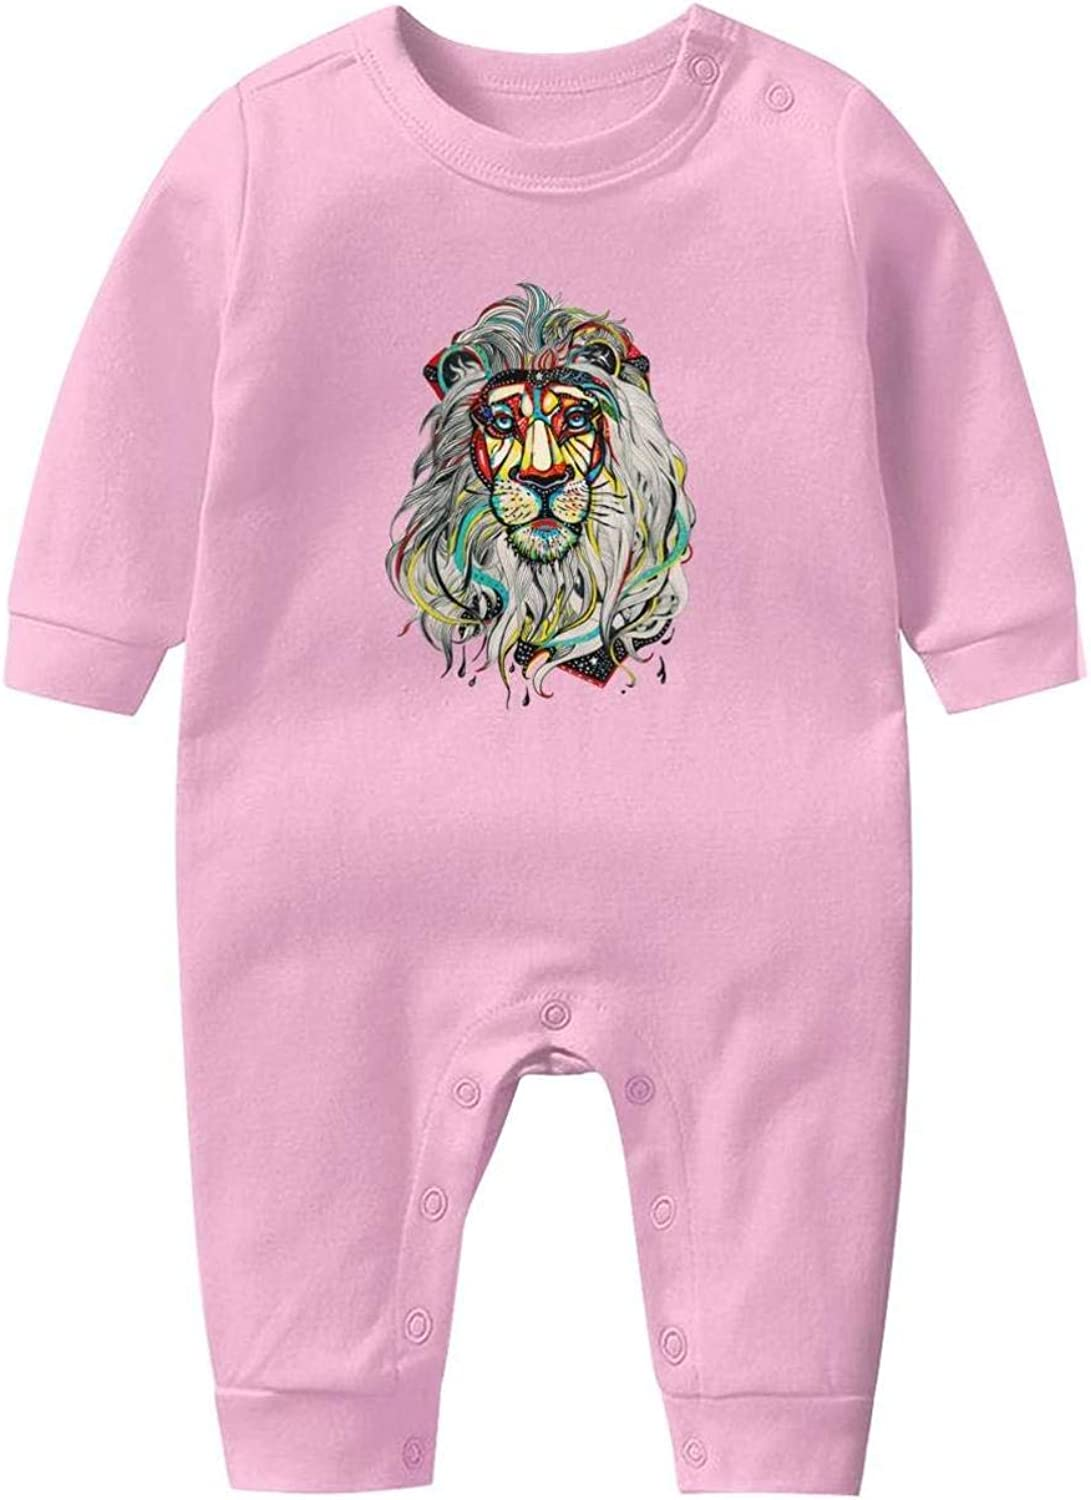 Leo Sign Lion Cute Baby Crawling Suit Lone-Sleeved Romper Bodysuit